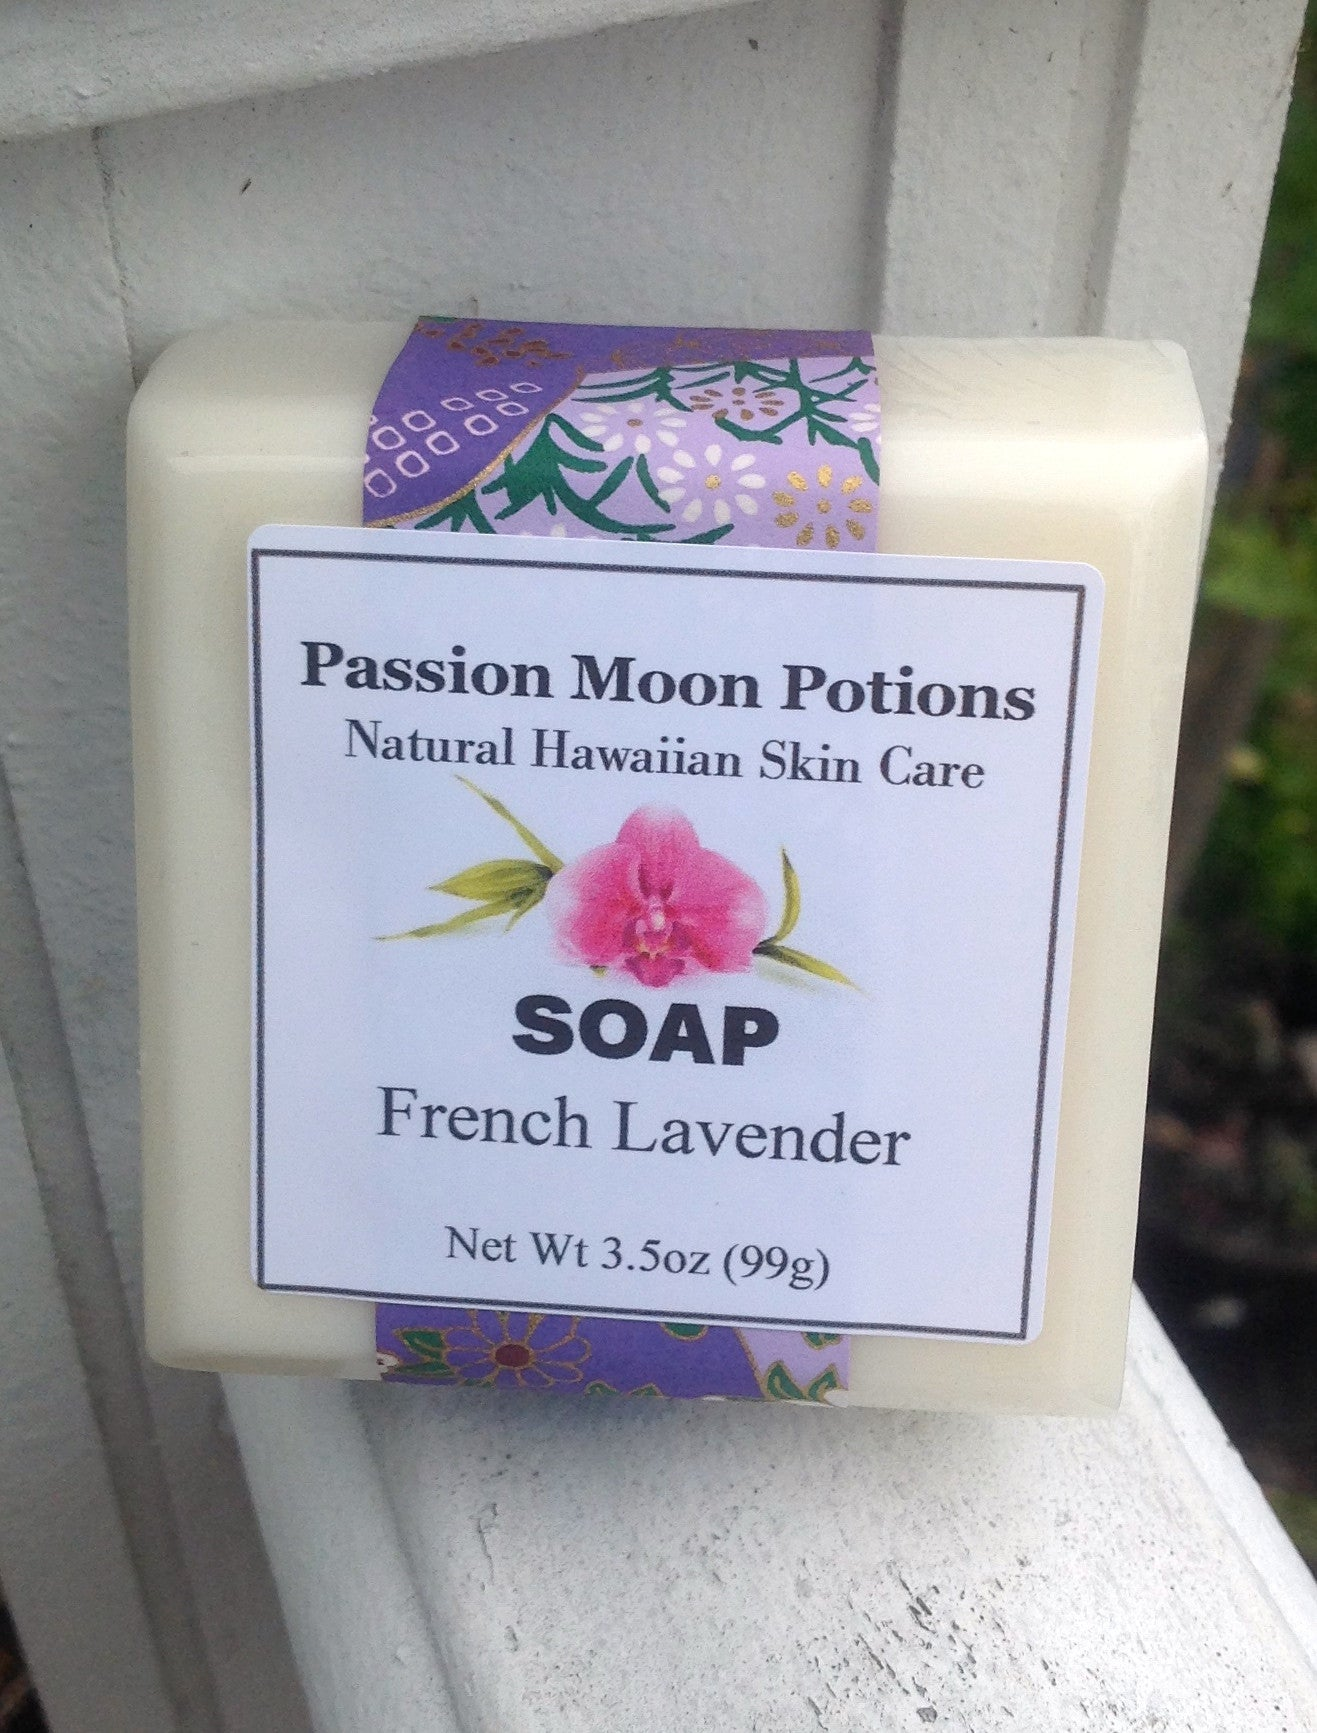 French Lavender Soap - Passion Moon Potions - 2